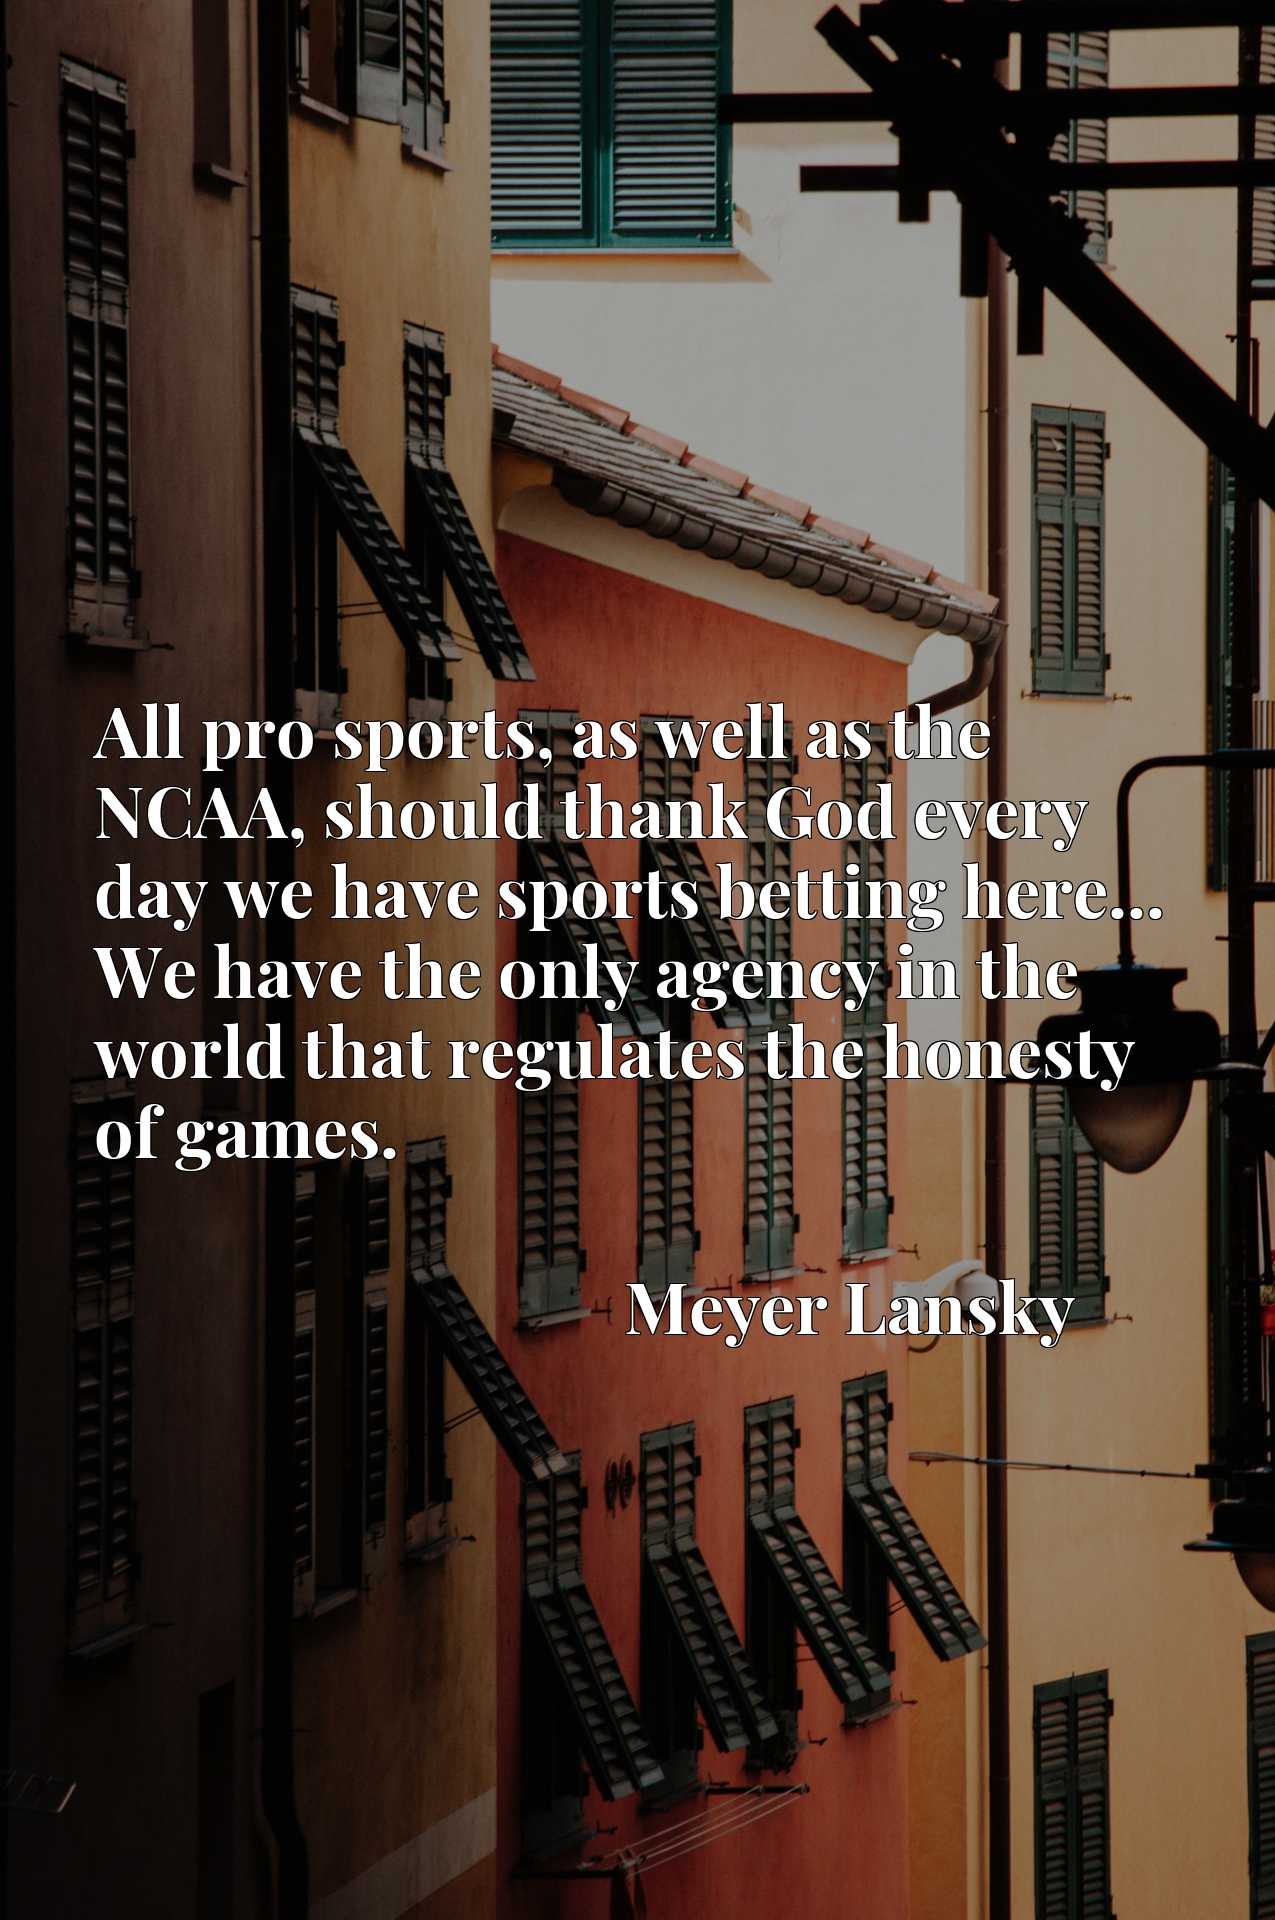 All pro sports, as well as the NCAA, should thank God every day we have sports betting here... We have the only agency in the world that regulates the honesty of games.